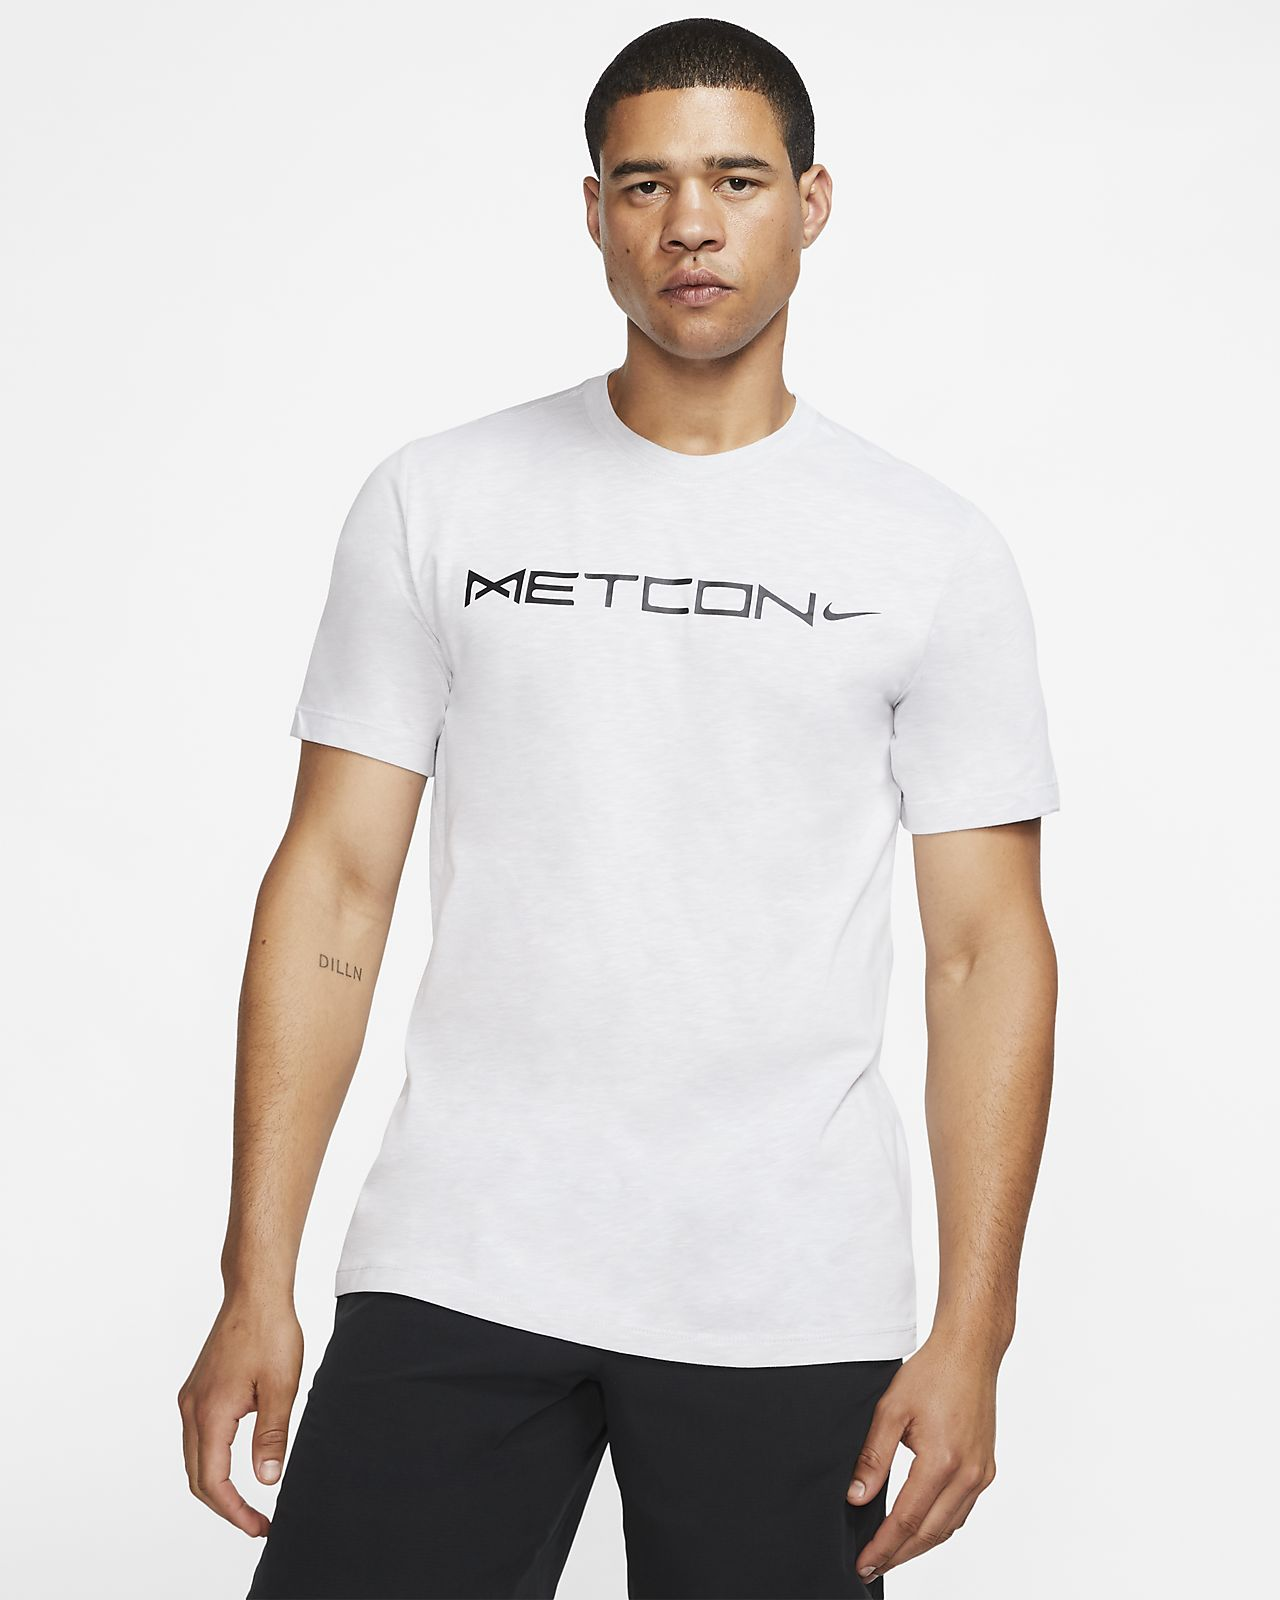 Tee-shirt de training Nike Dri-FIT « Metcon » pour Homme